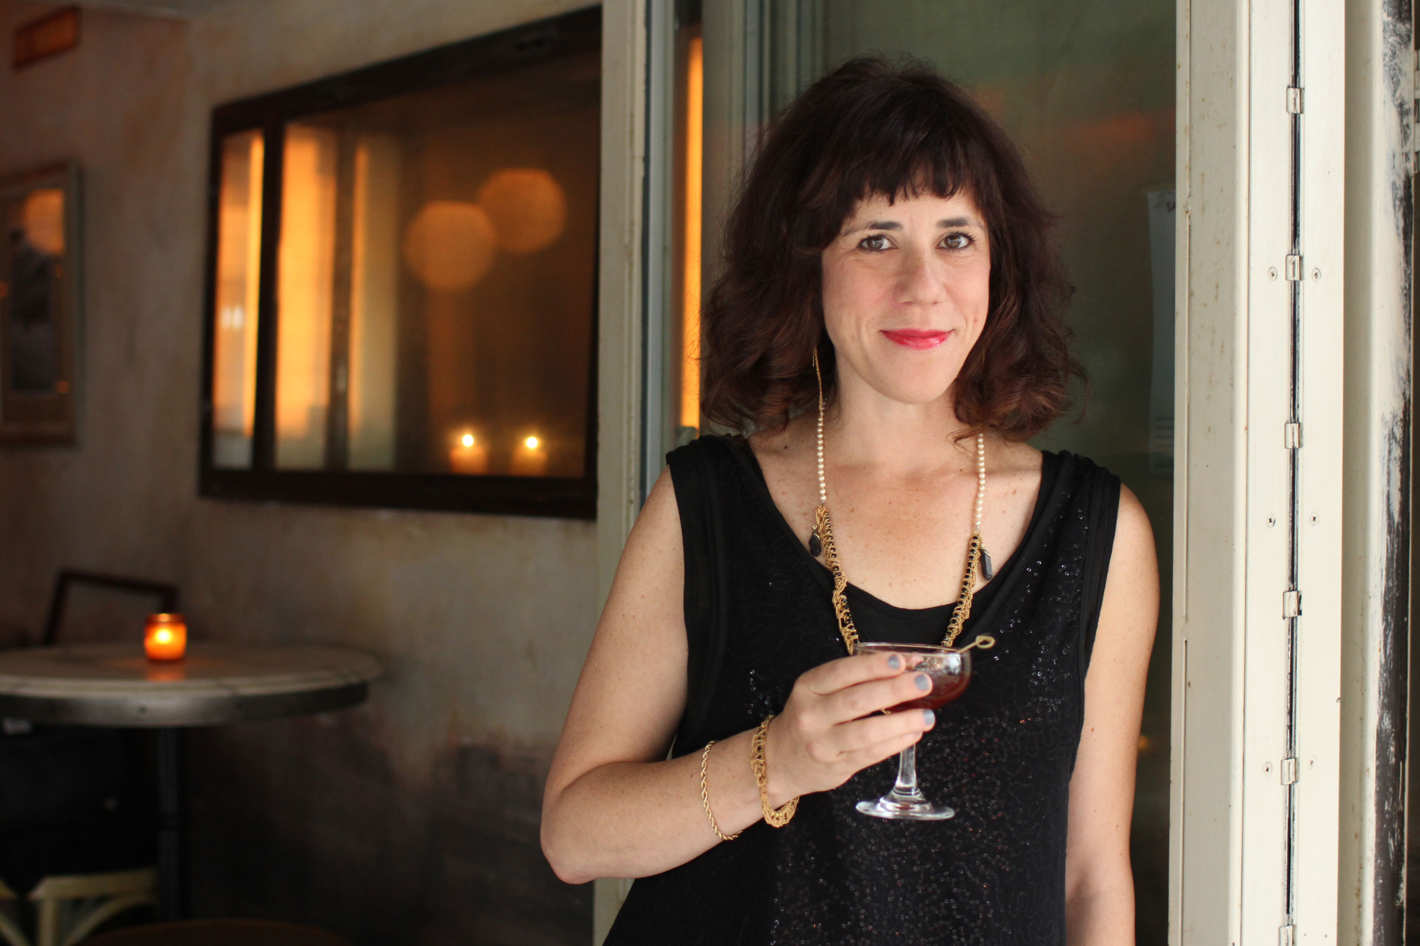 Jami Attenberg, a white woman with shaggy brown hair is leaning against a door frame holding a drink in one hand, while she softly smiles